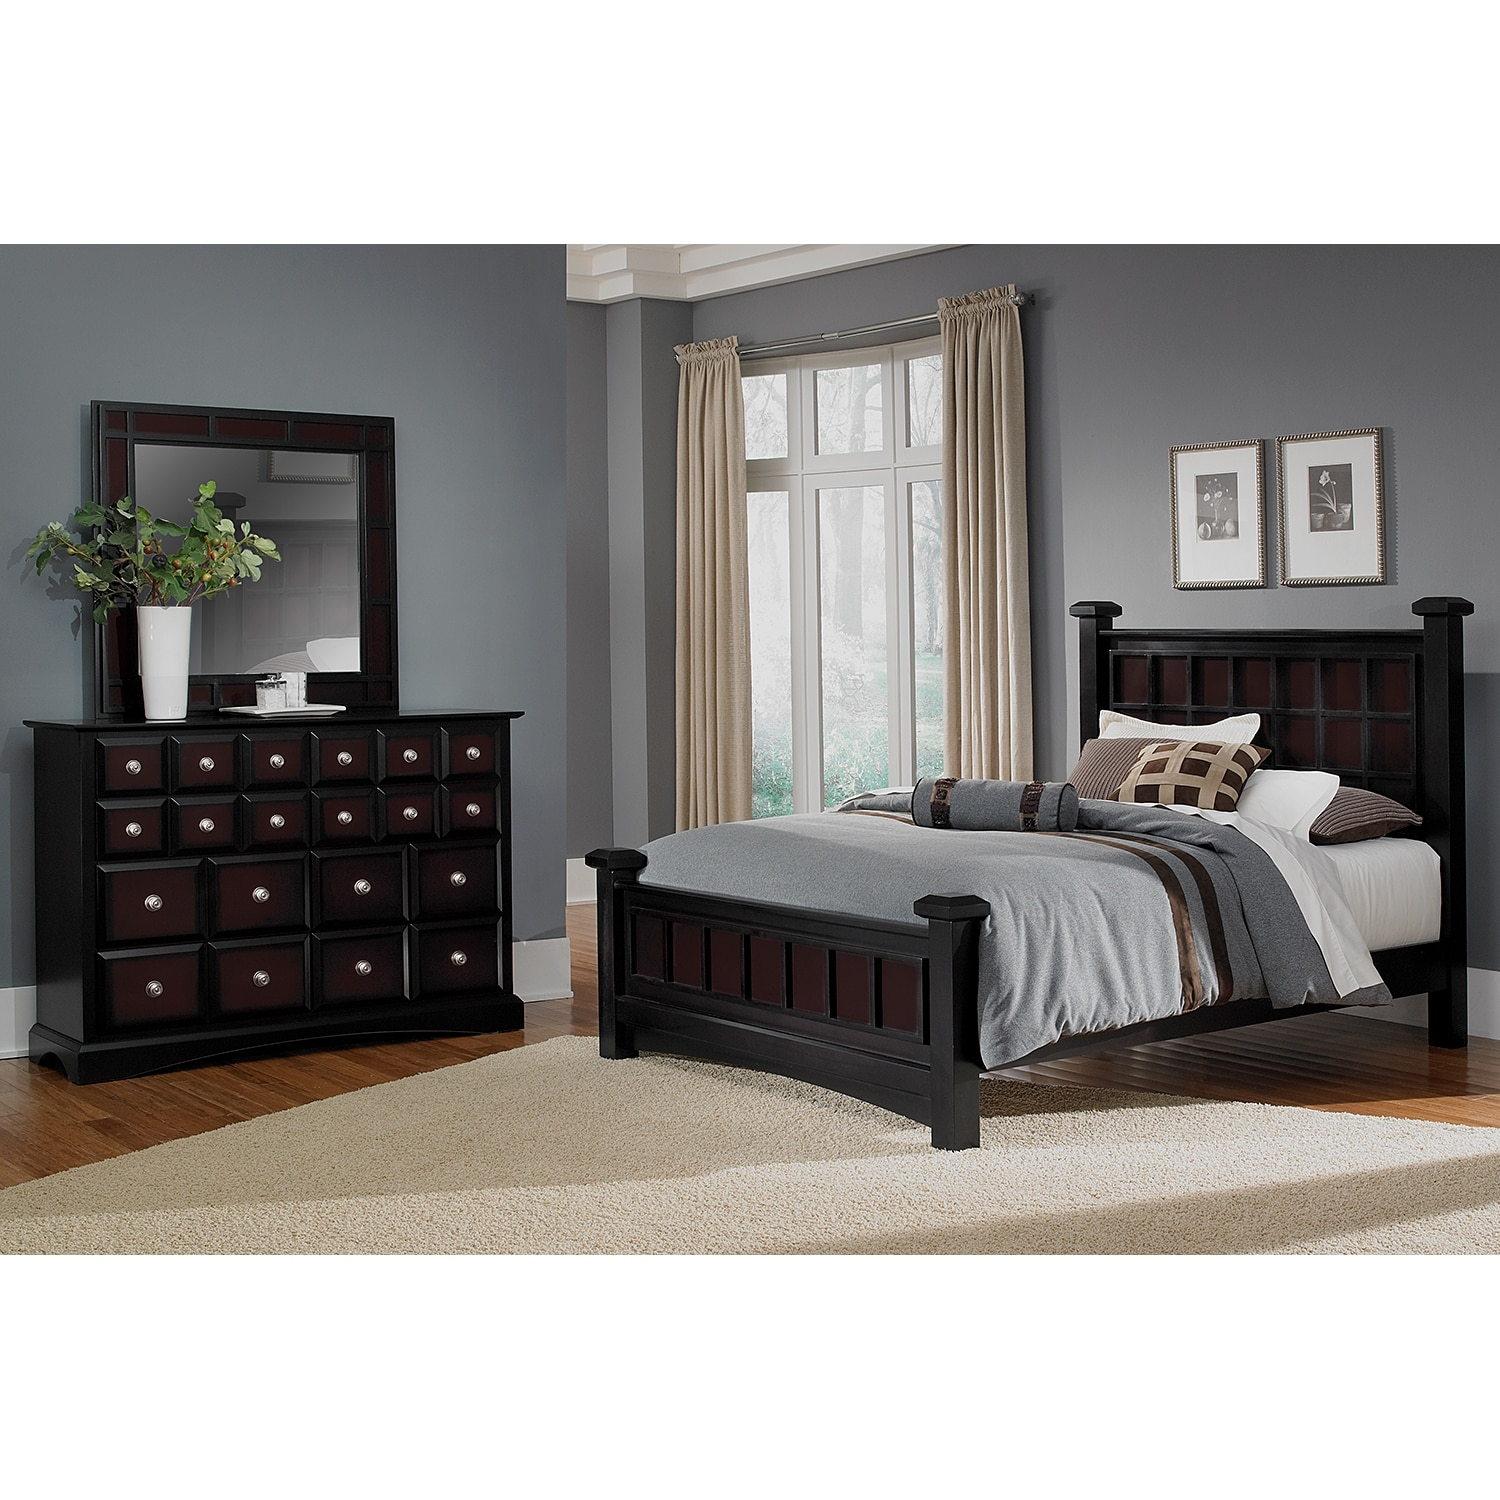 bedroom sets value city on furniture value city furniture 14422